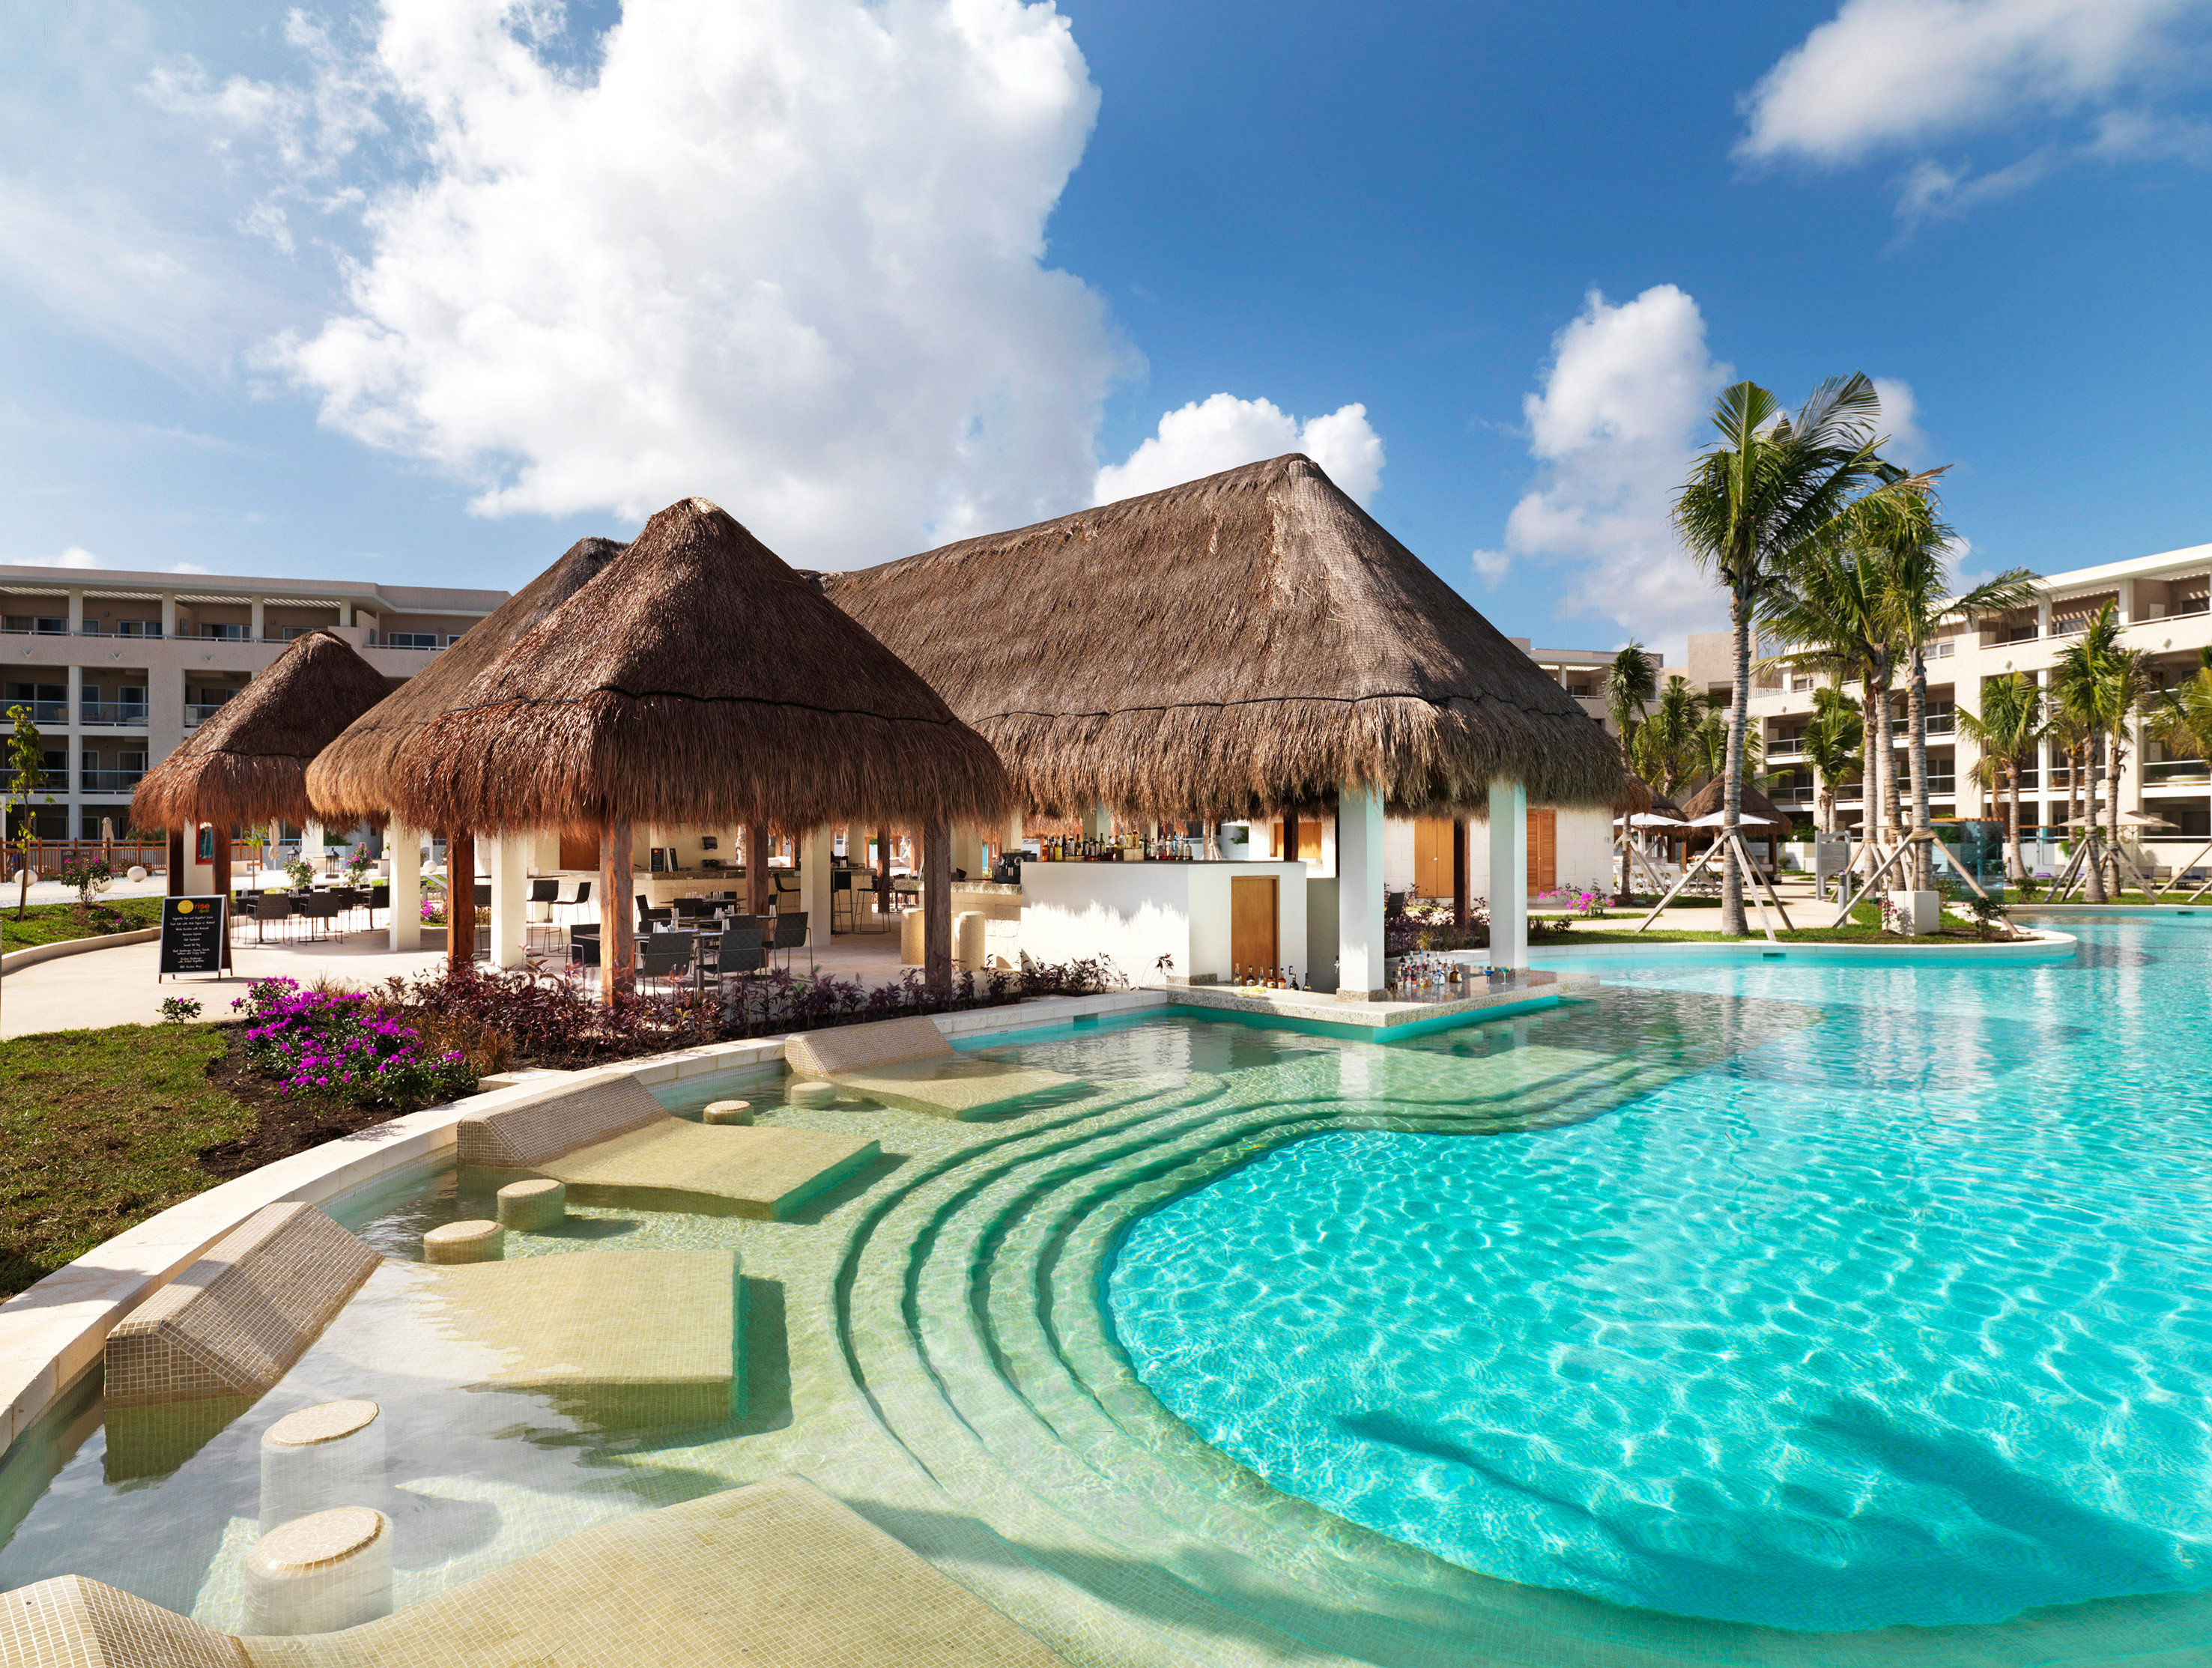 All-Inclusive Resorts Family Travel Hotels sky outdoor swimming pool Pool property Resort leisure estate vacation Villa real estate home swimming several day